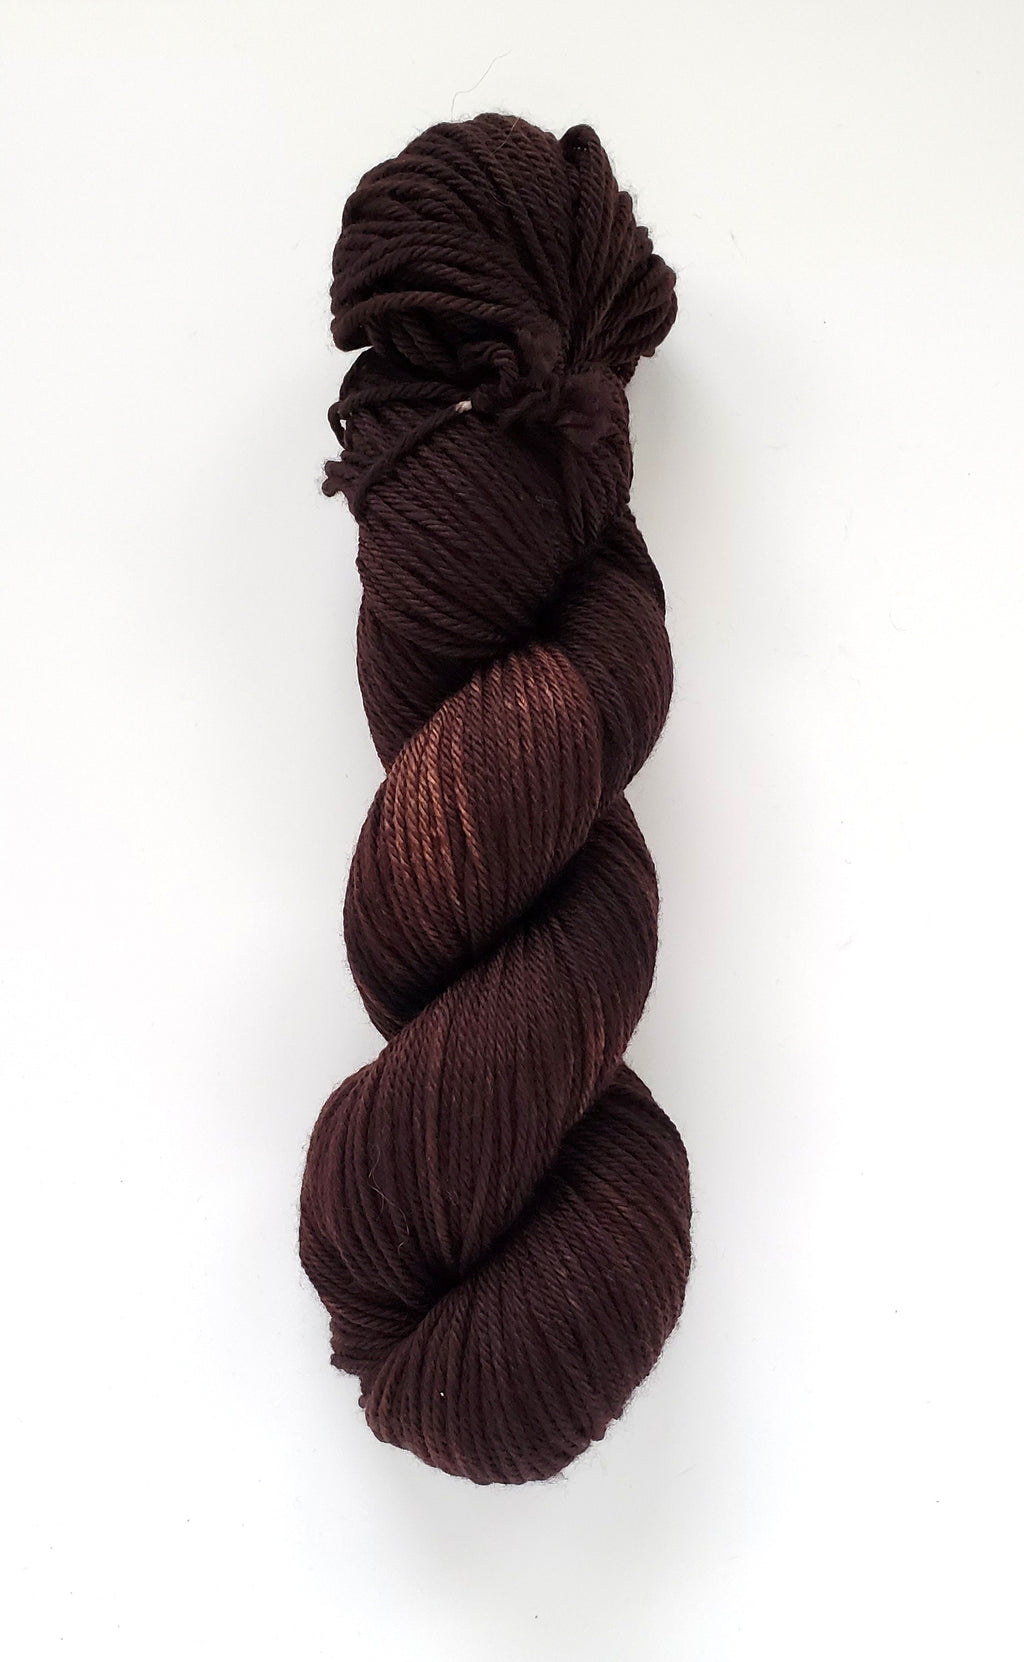 Anda Hand Dyed Yarn Semi Solid Brown